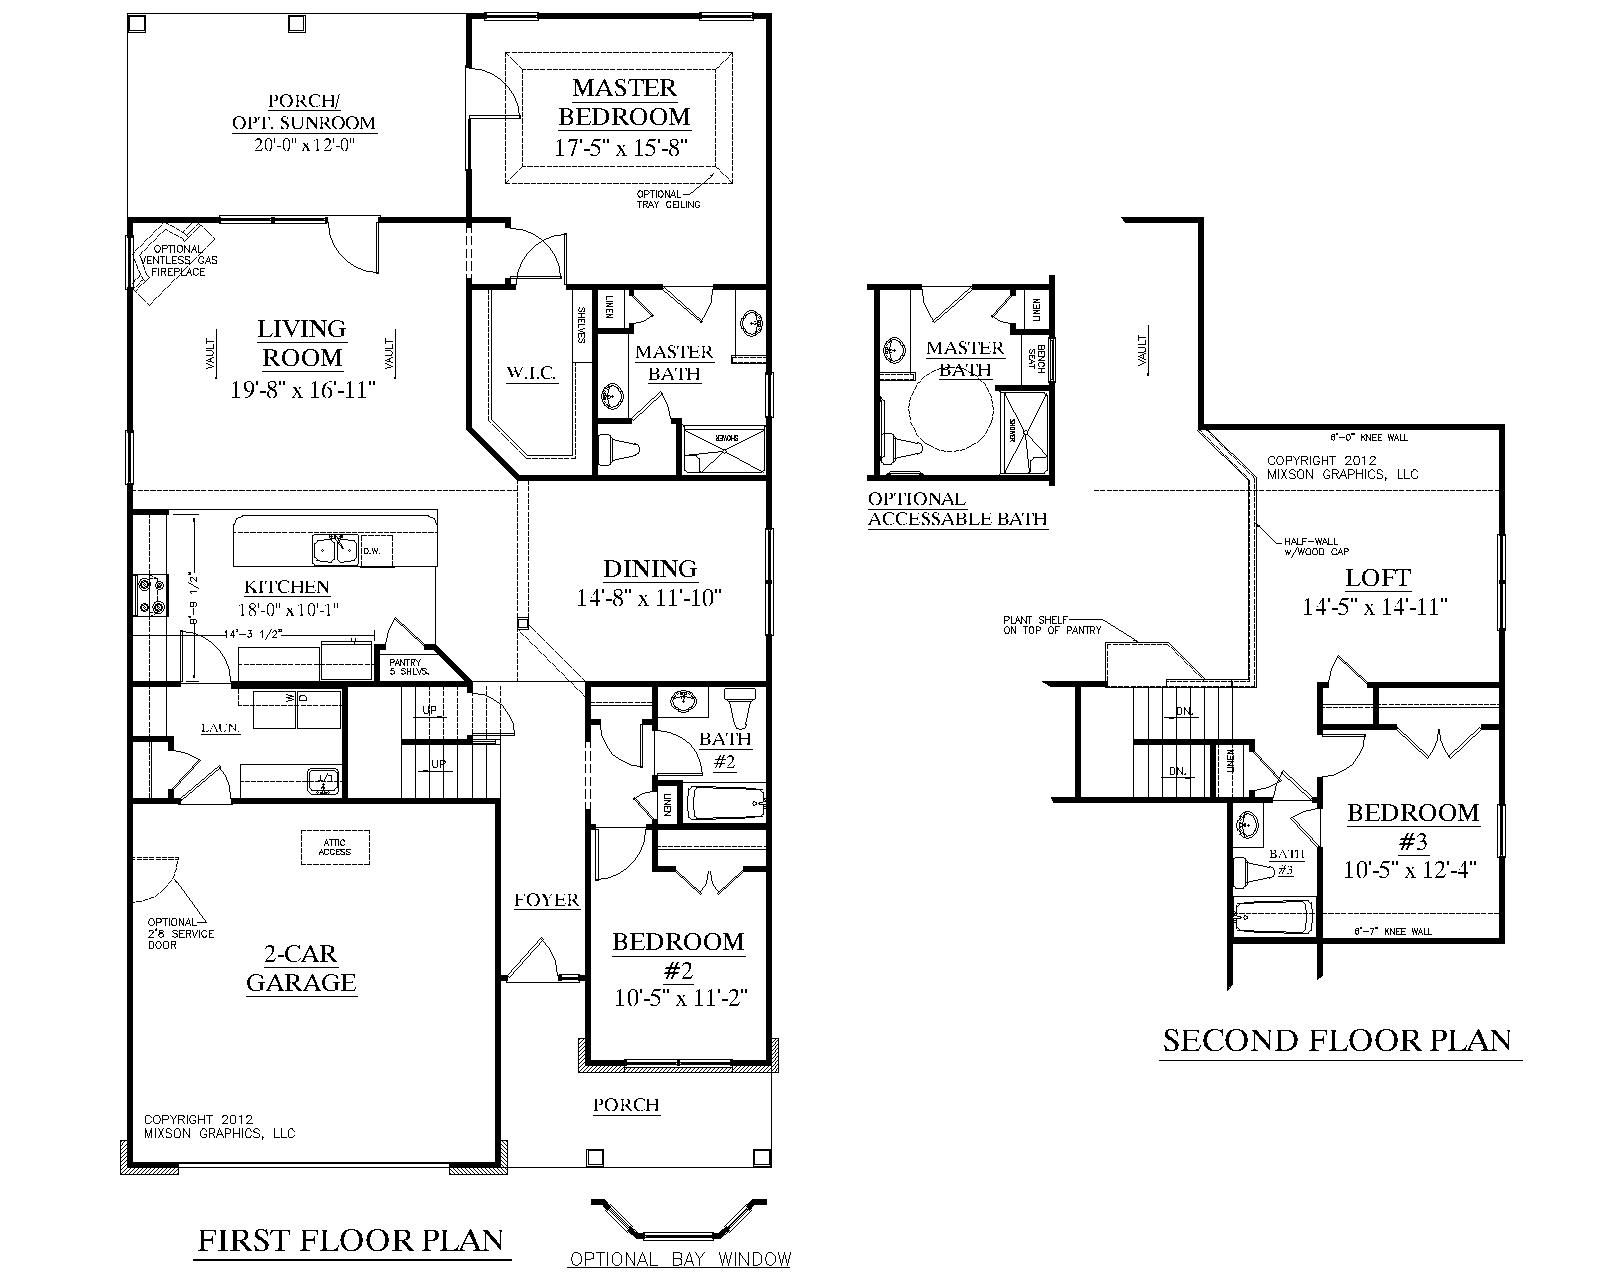 House plan 2224 kingstree floor plan traditional 1 1 2 for 2 story house plans